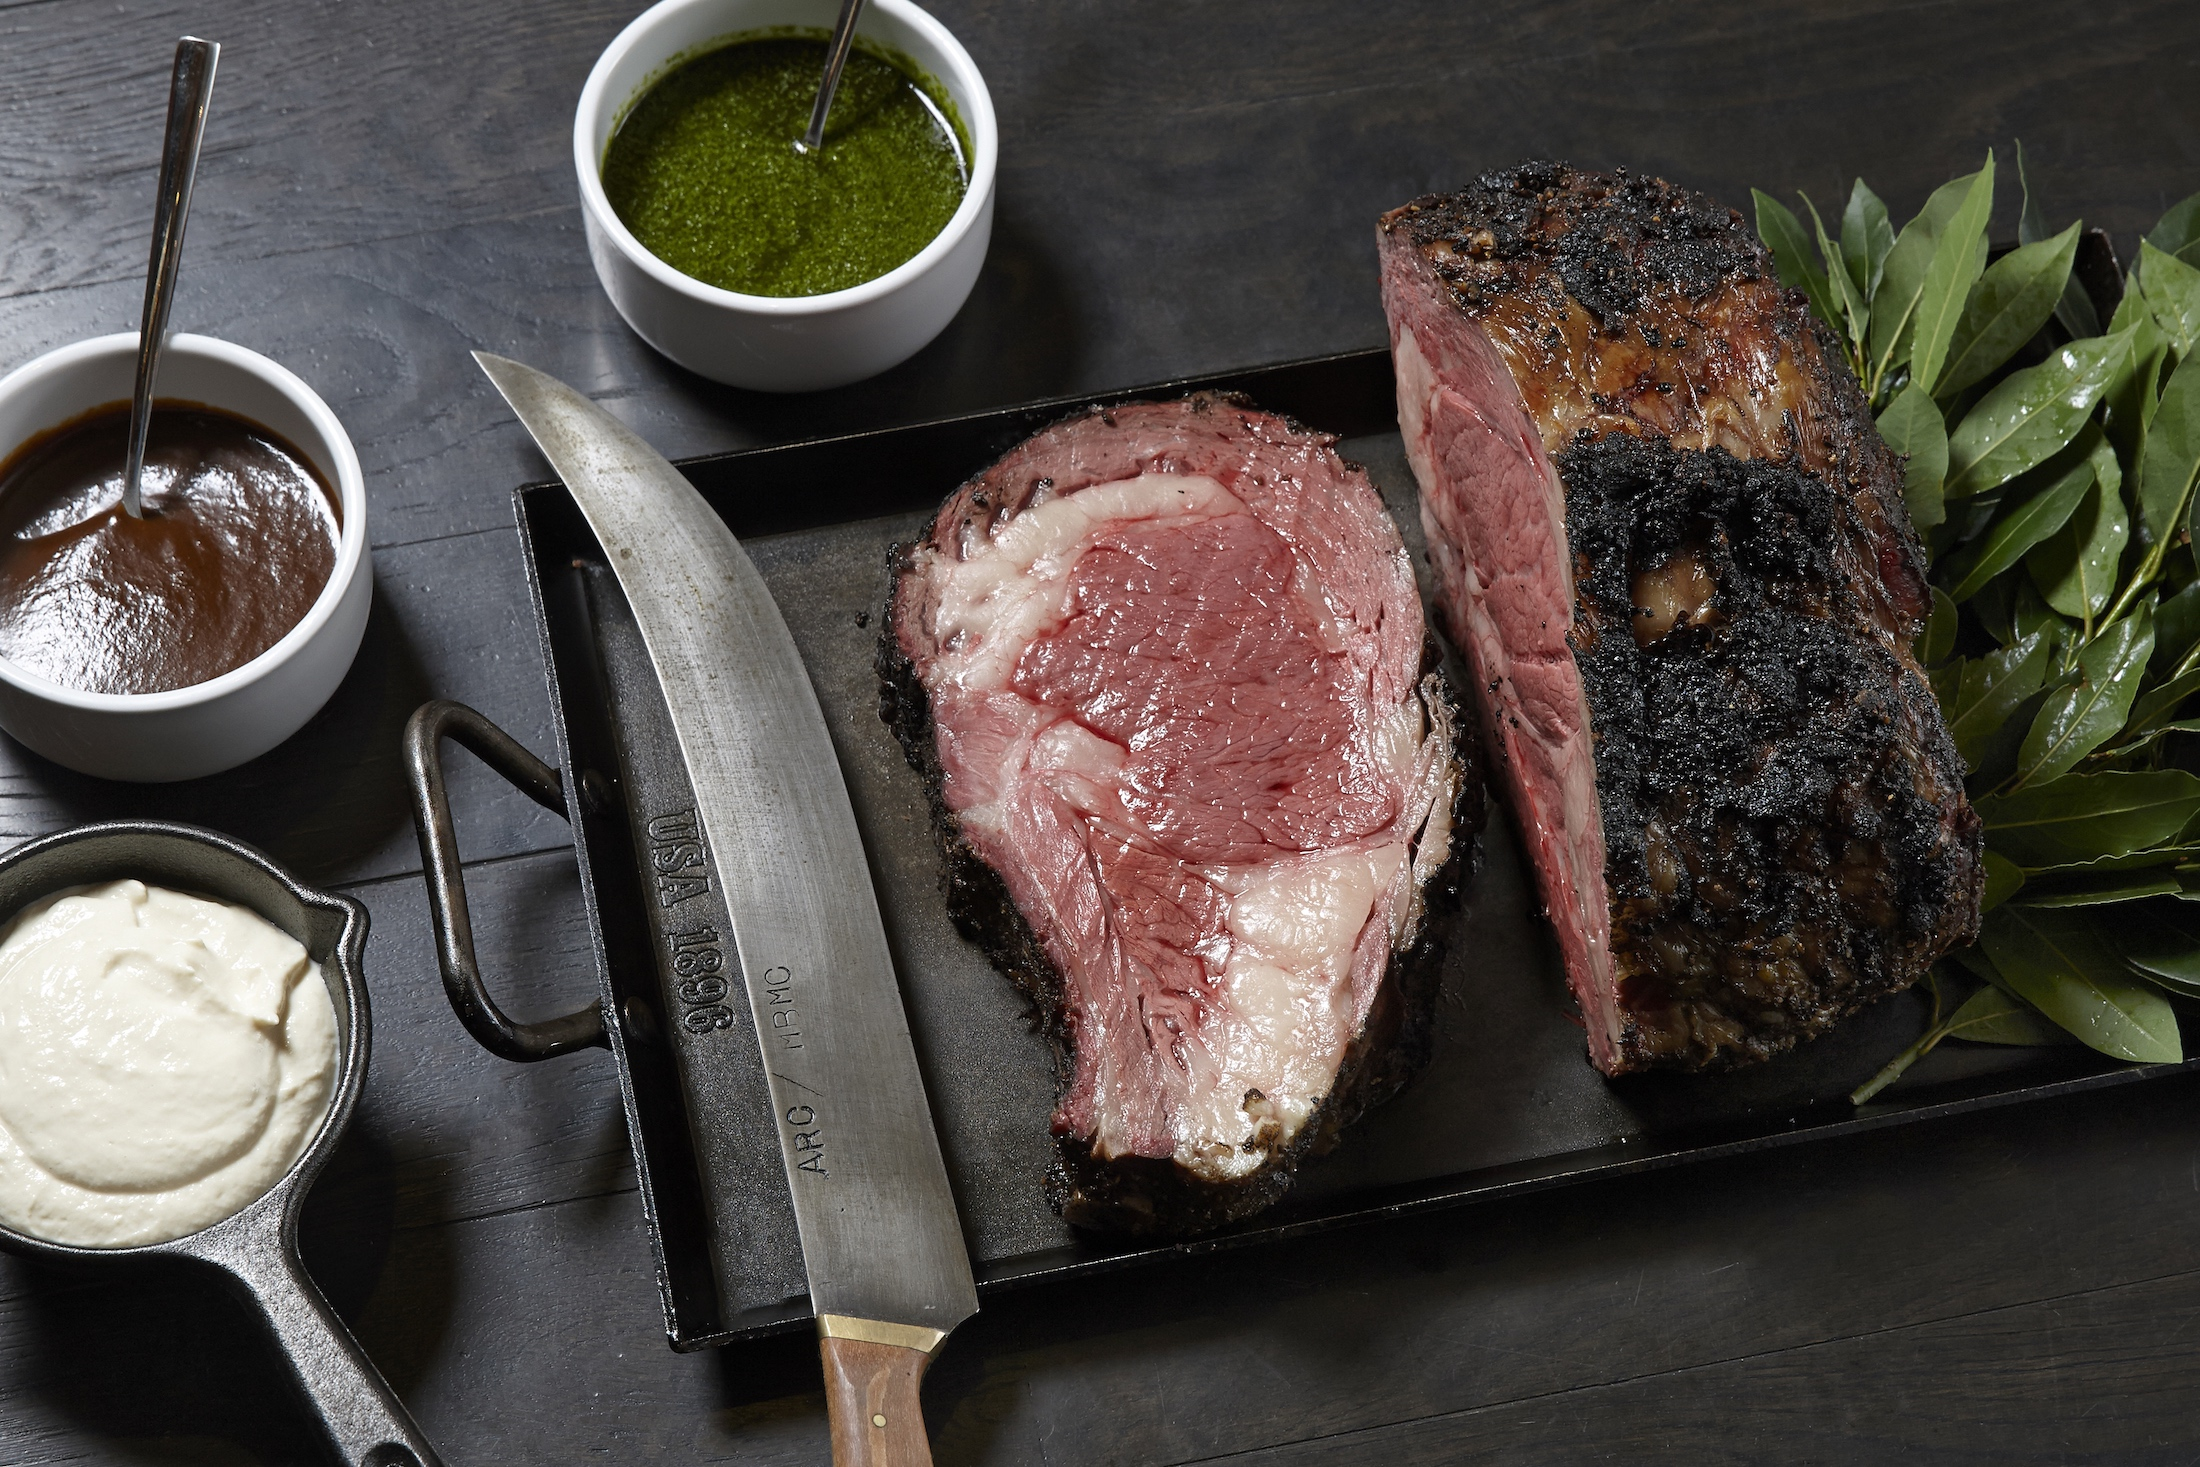 A Very Special, But Oh So Simple Meal - Prime Rib Au Jus ...  Prime Rib